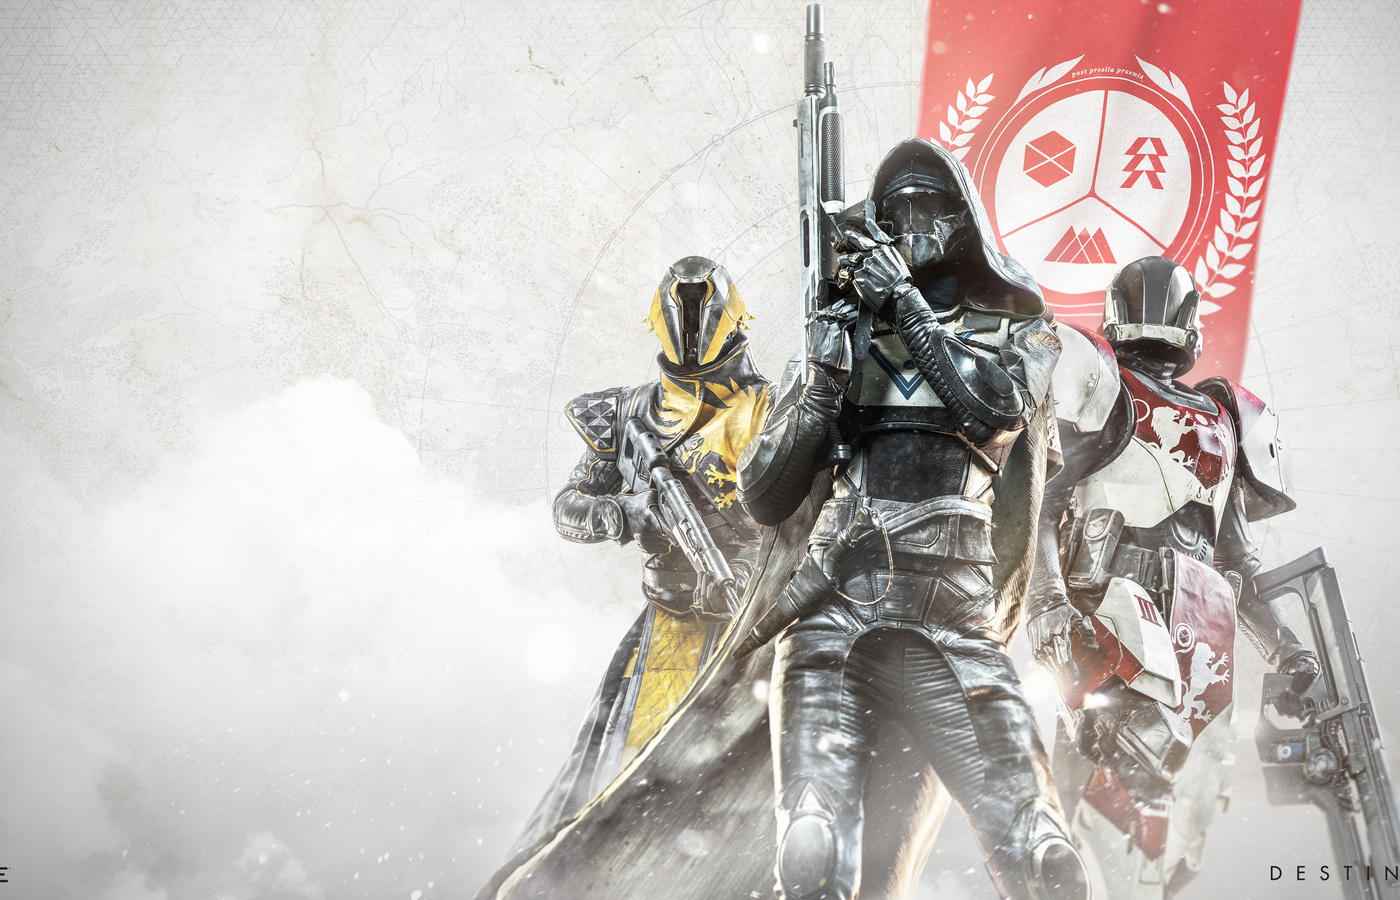 warlock-hunter-titan-destiny-2-4k-game-kl.jpg